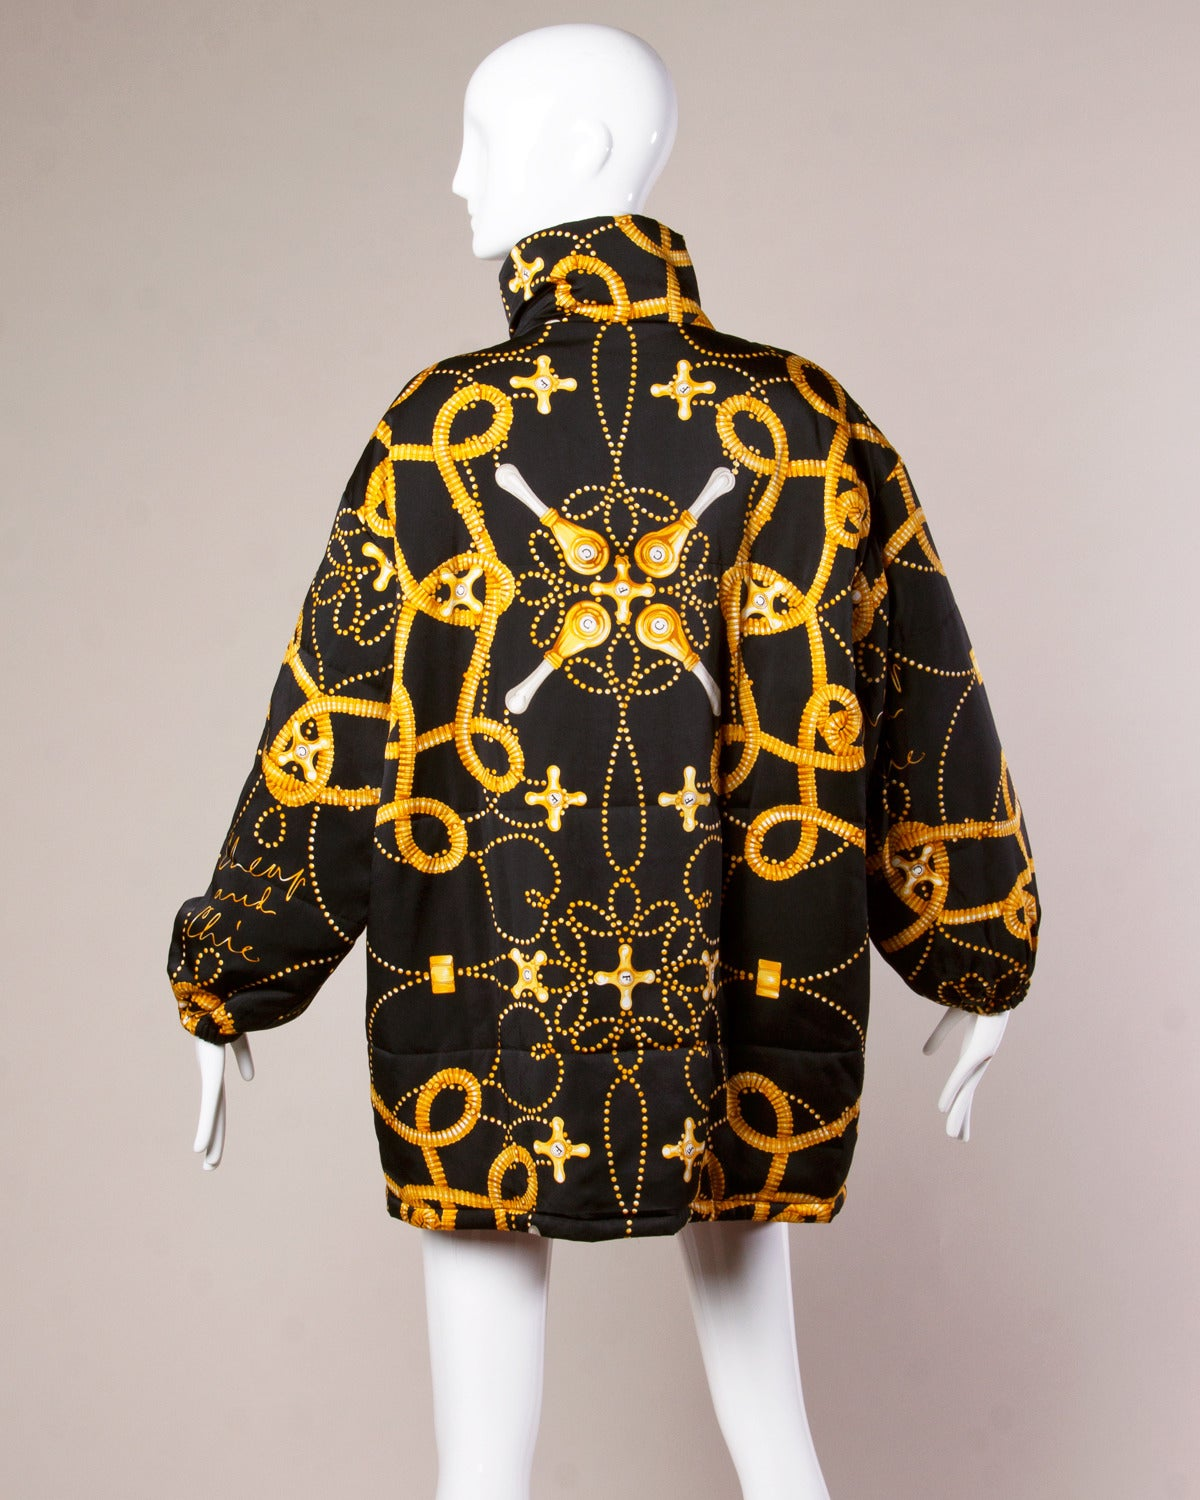 1991 Moschino Vintage 1990s 90s Water Faucet Print Silk Down Jacket 3